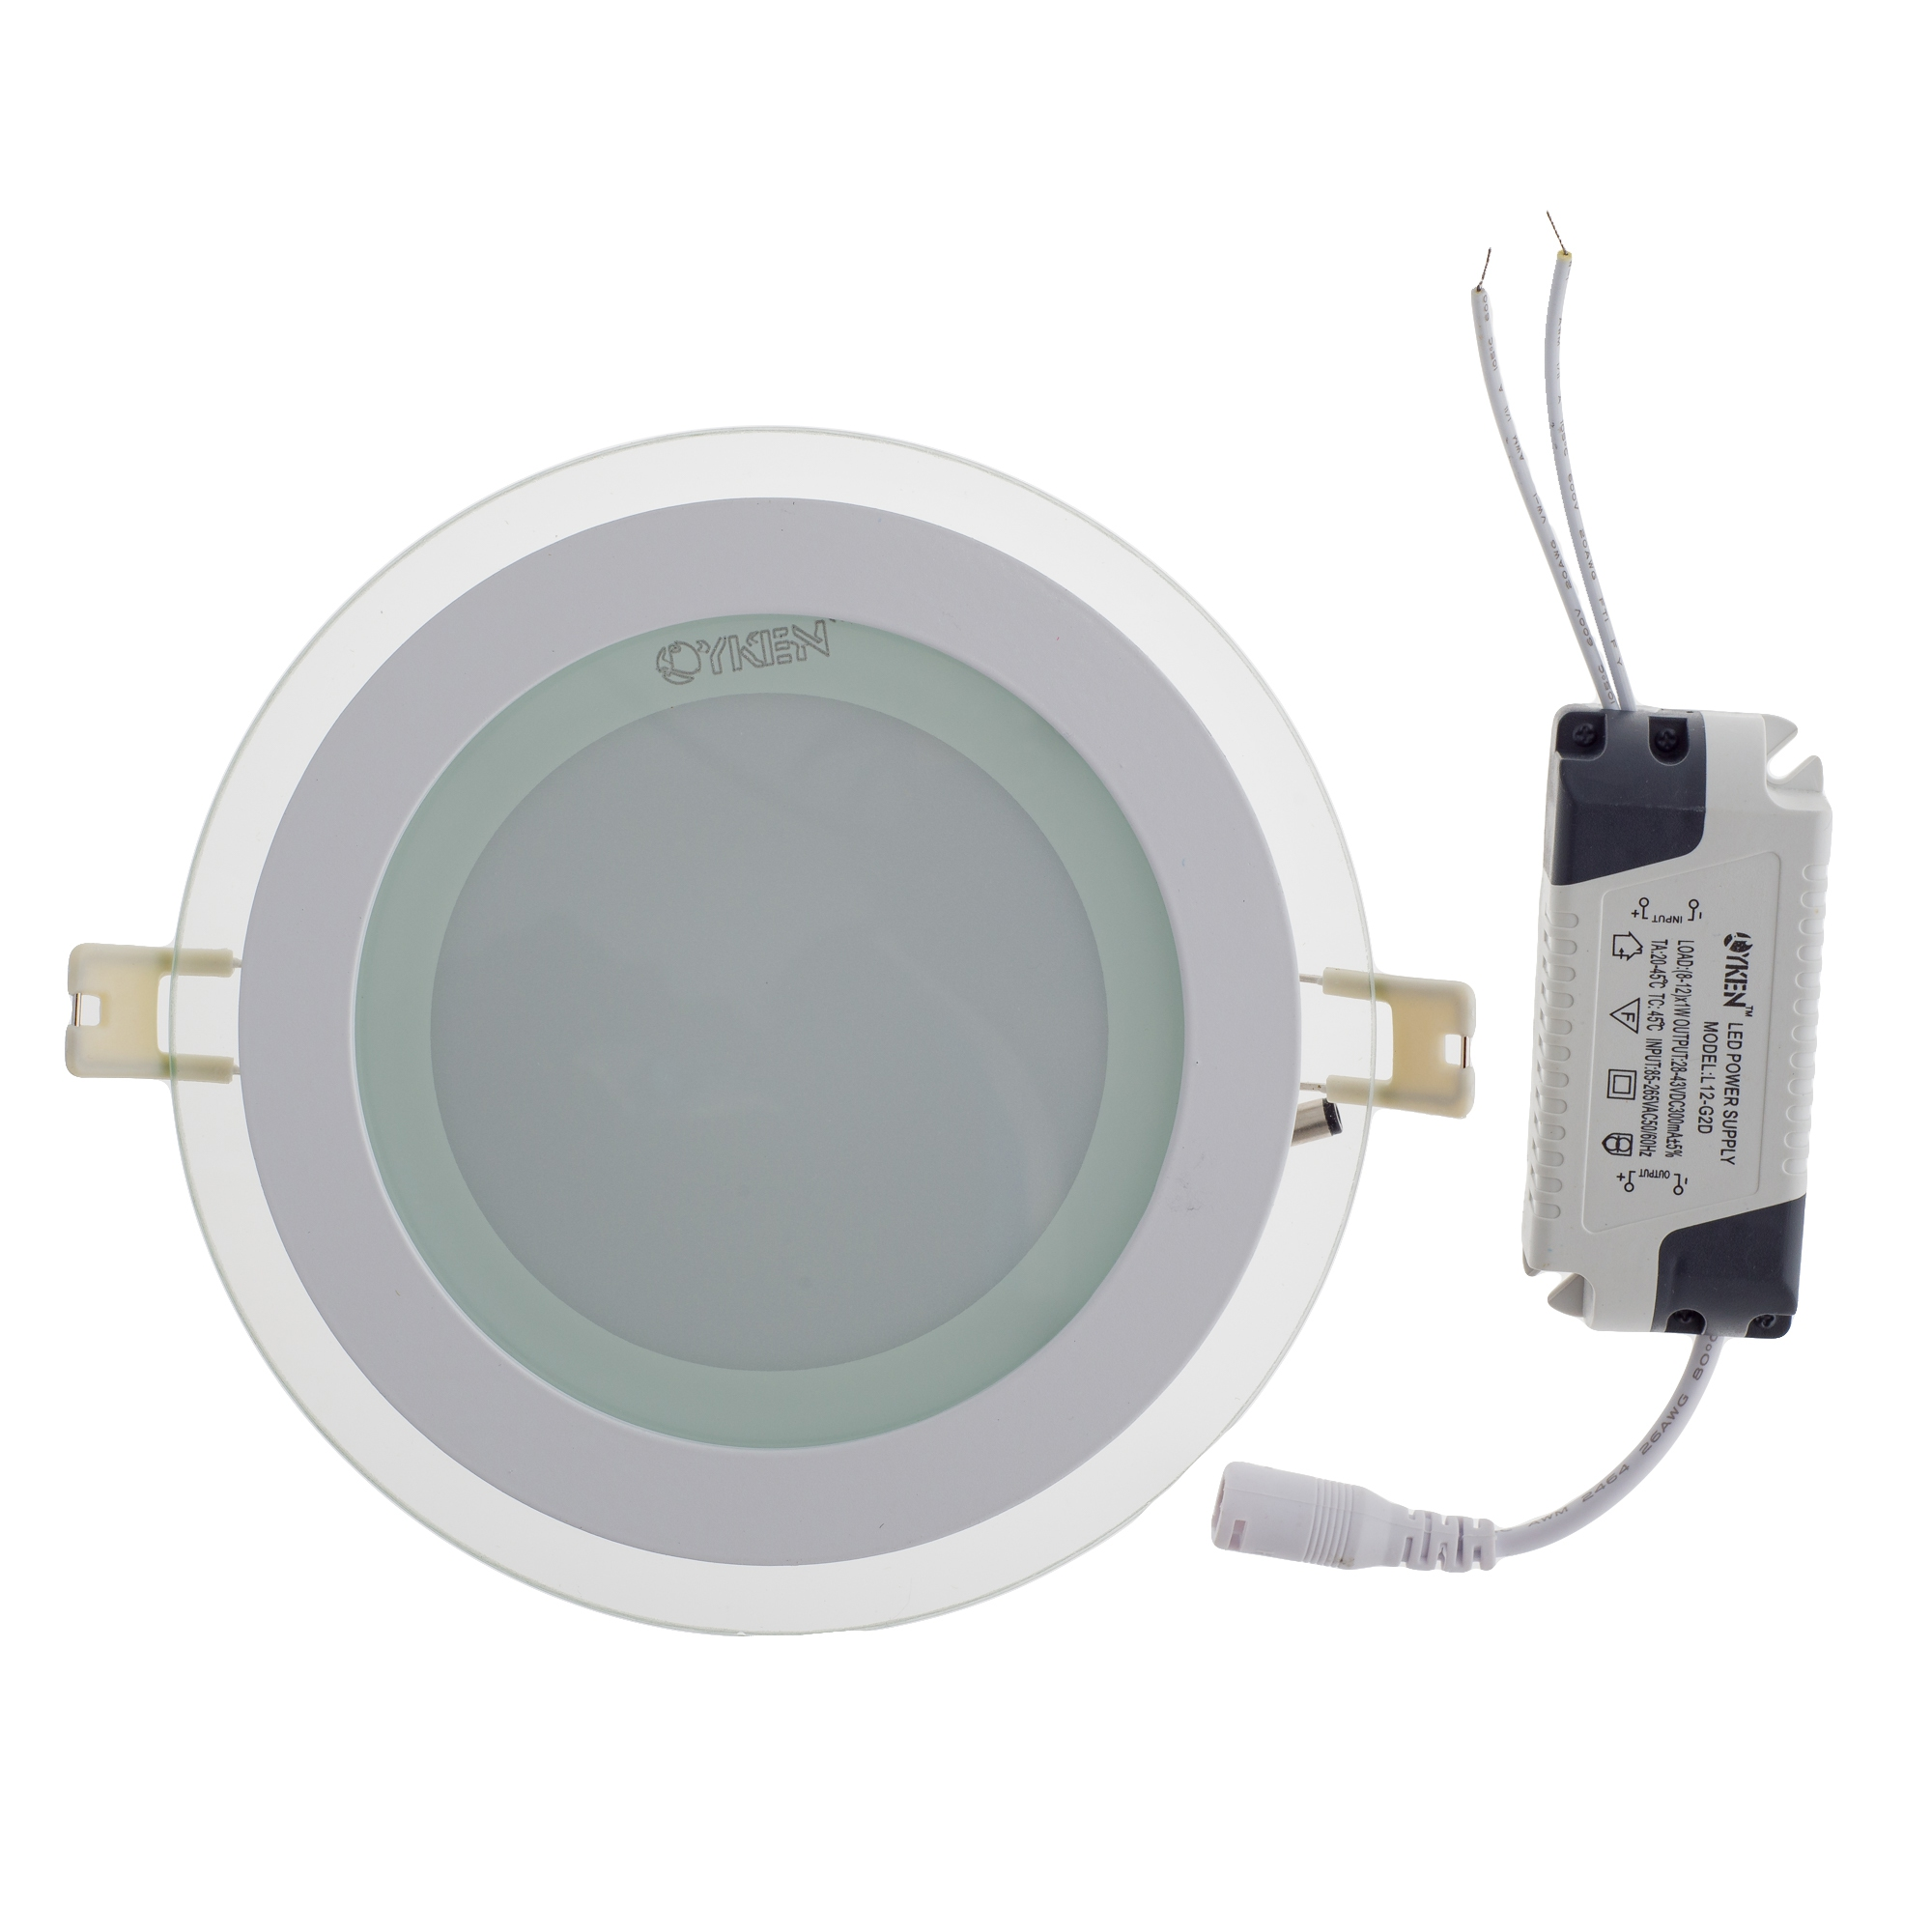 reputable site 25d61 c90ab Lyken GEN-2 L230 12W LED Glass Type Round Downlight - Warm White (6pcs)